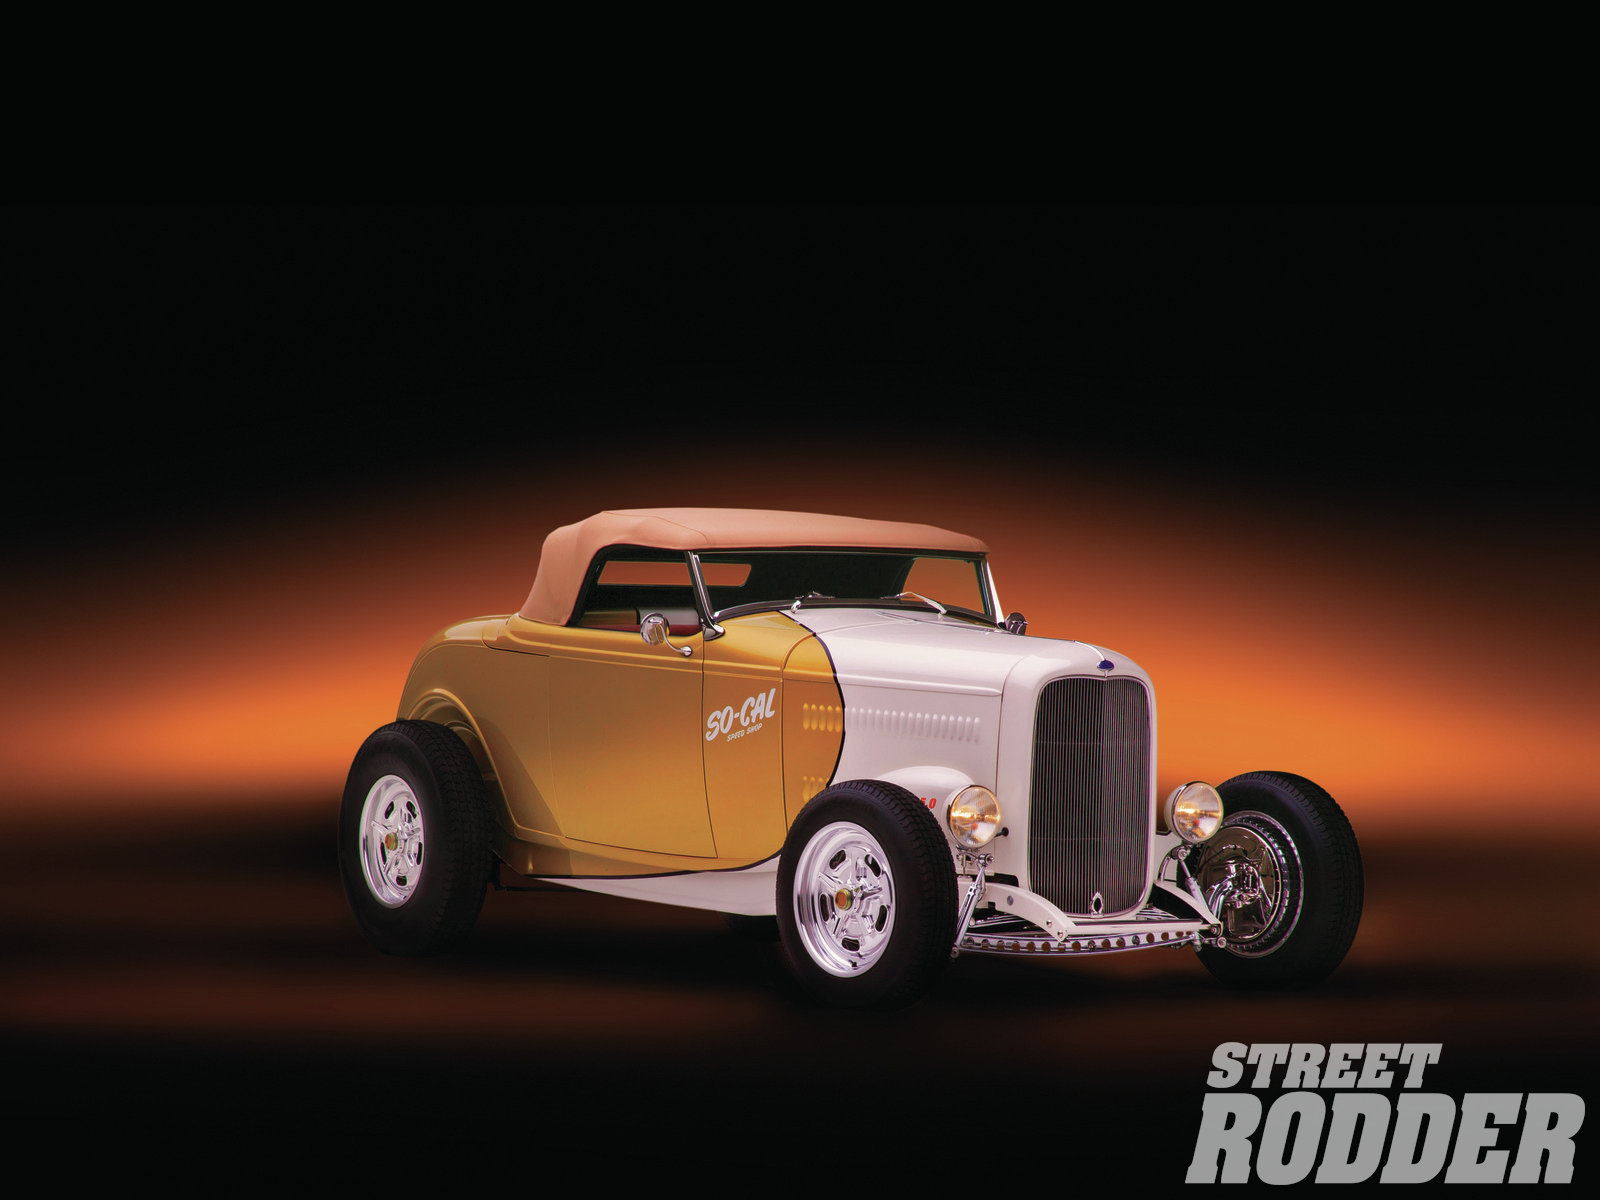 1932 Ford Highboy Roadster retro hot rod wallpaper background